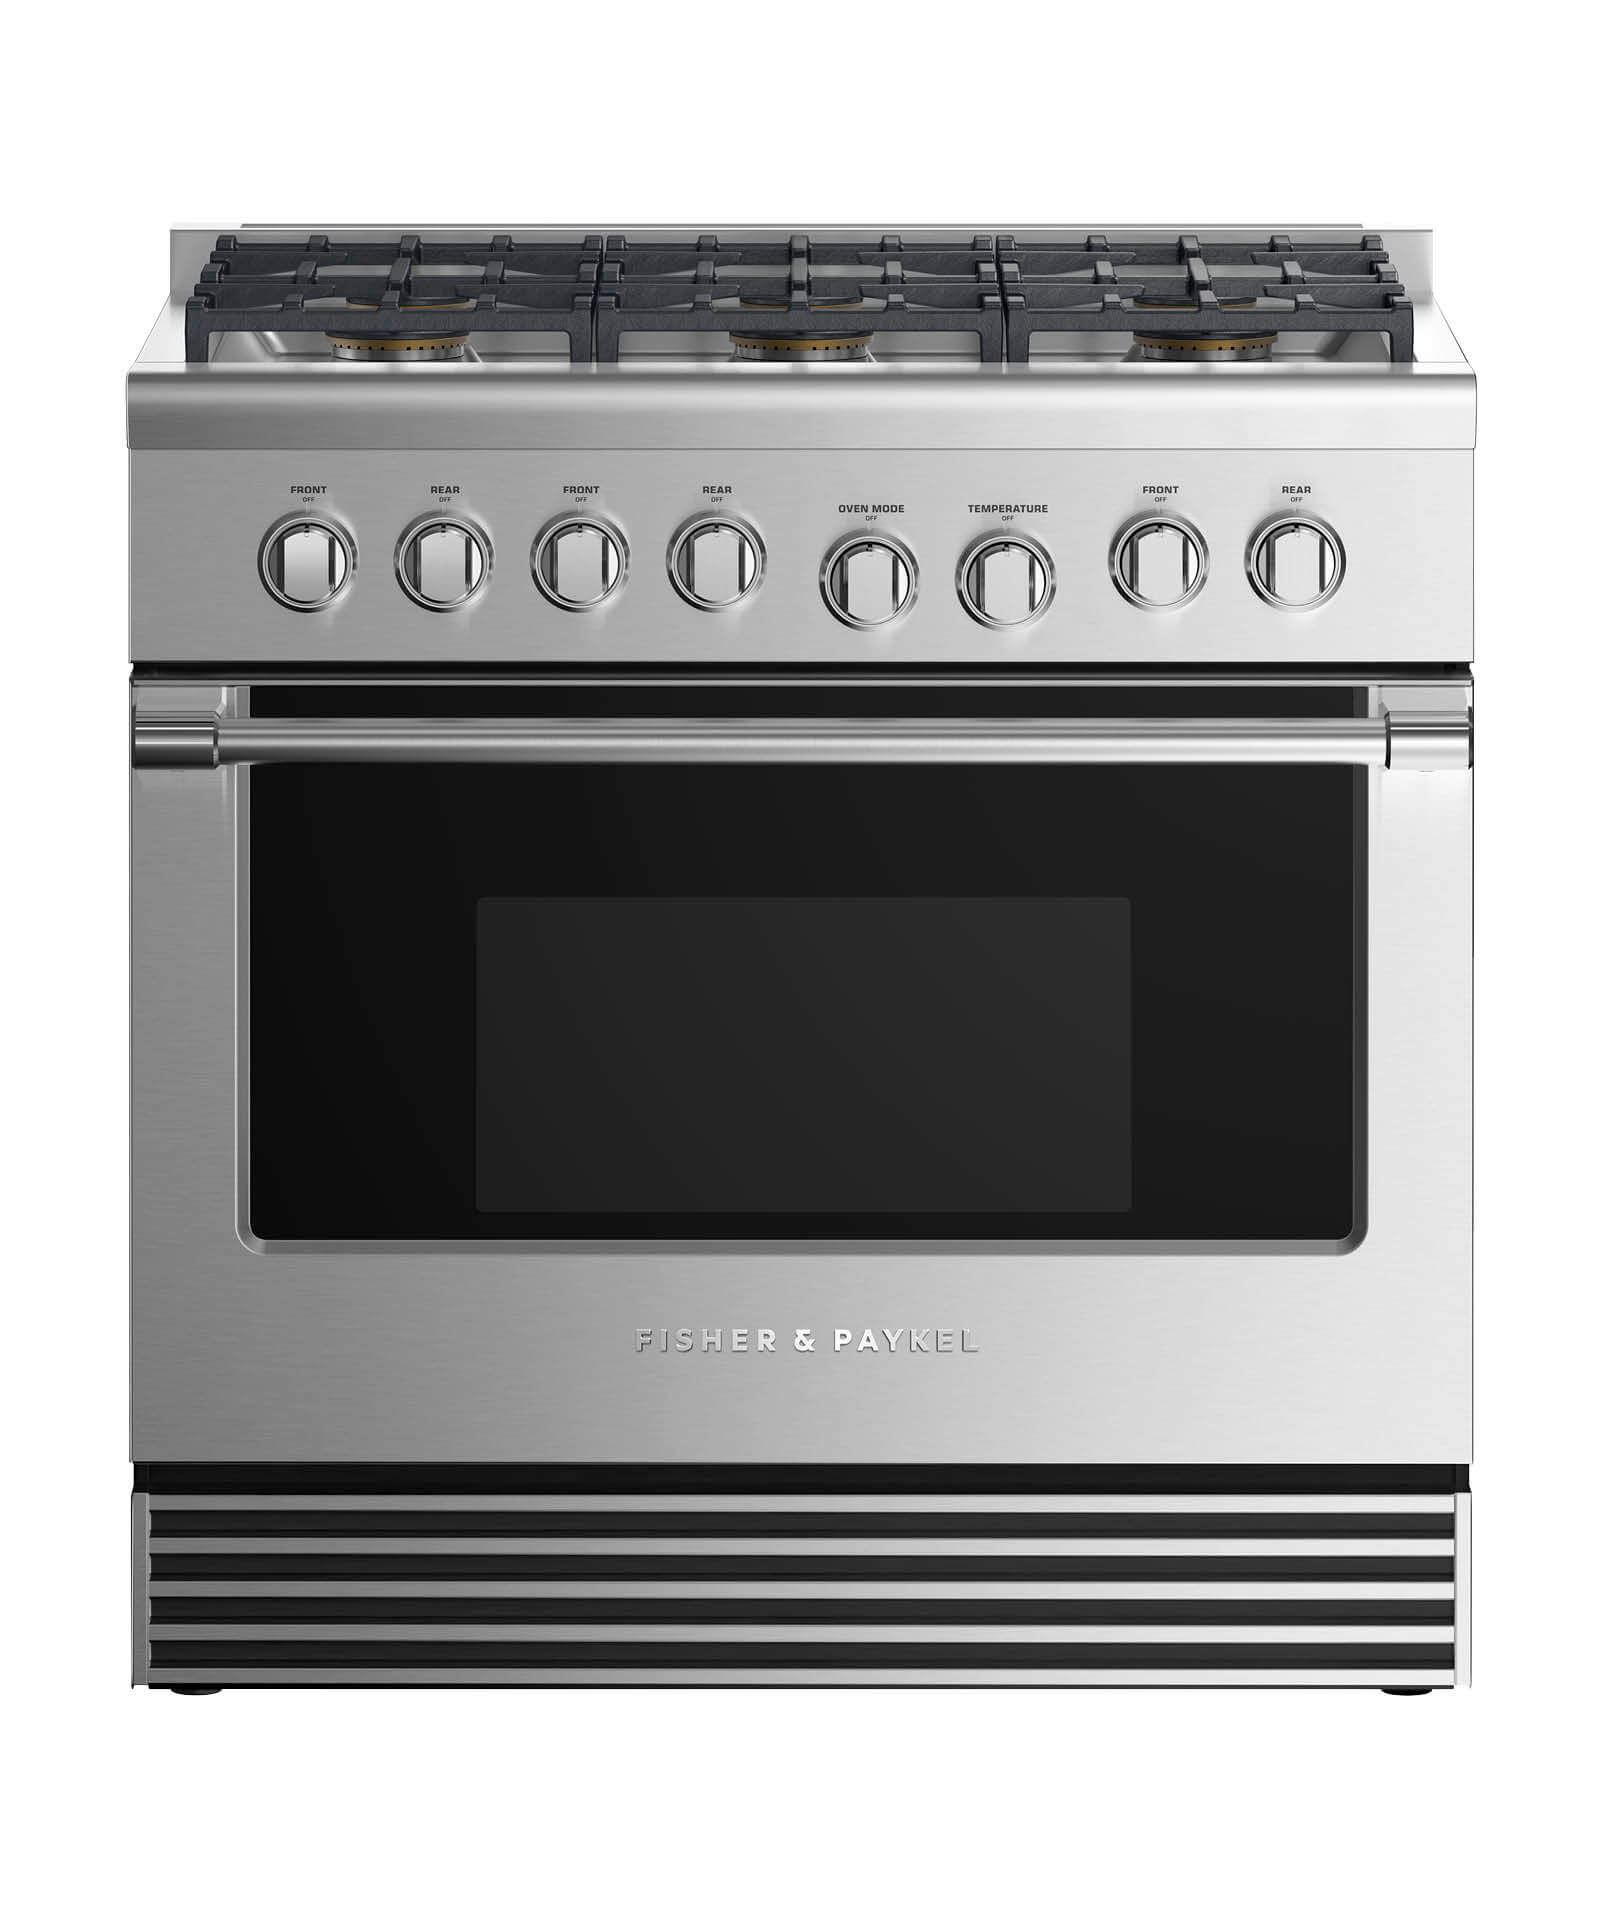 "Fisher and Paykel Gas Range 36"", 6 Burners (LPG)"